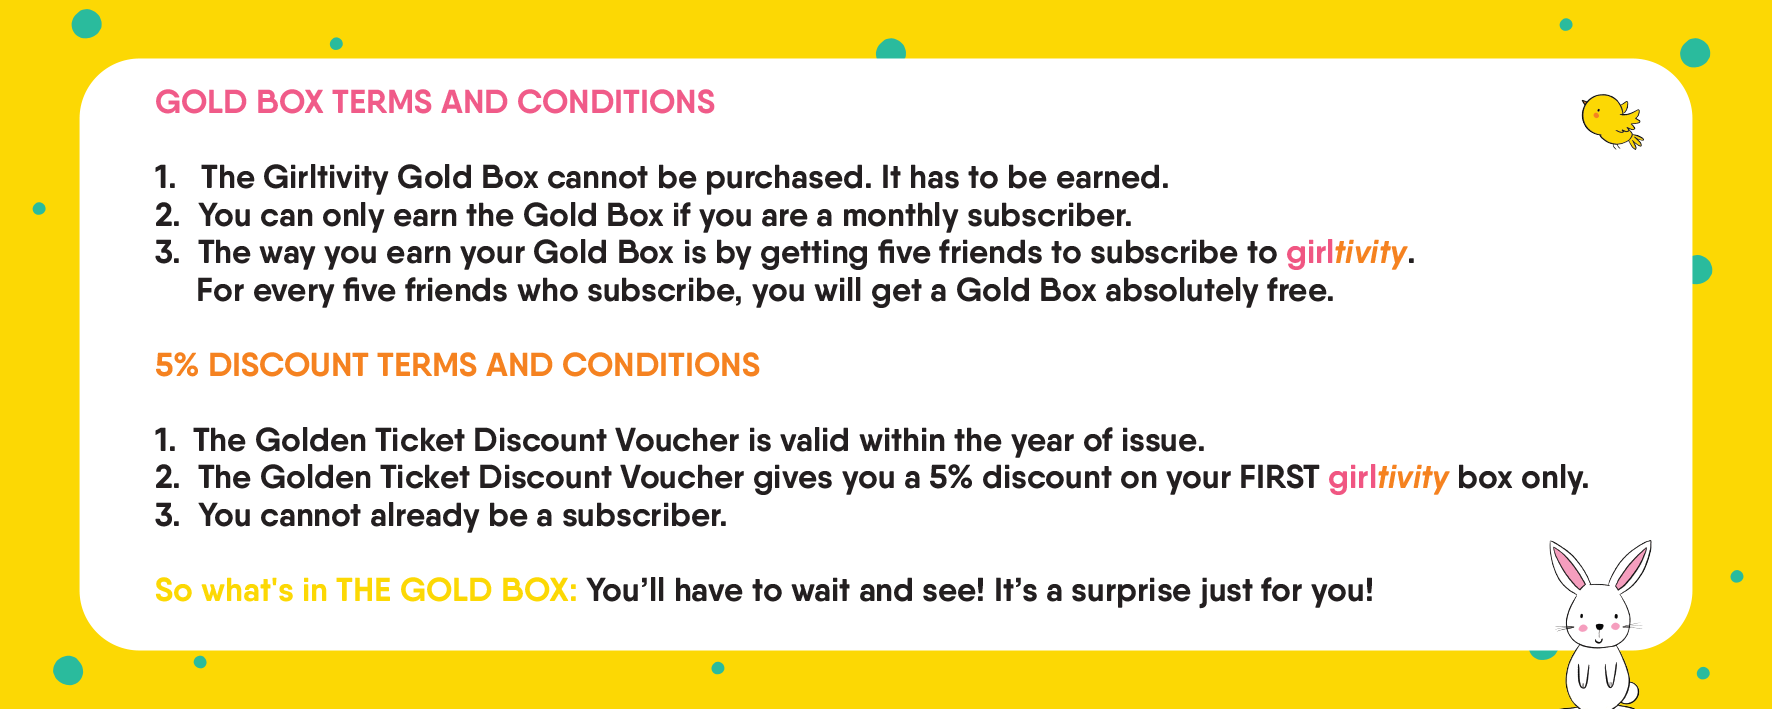 GoldenTicket-2